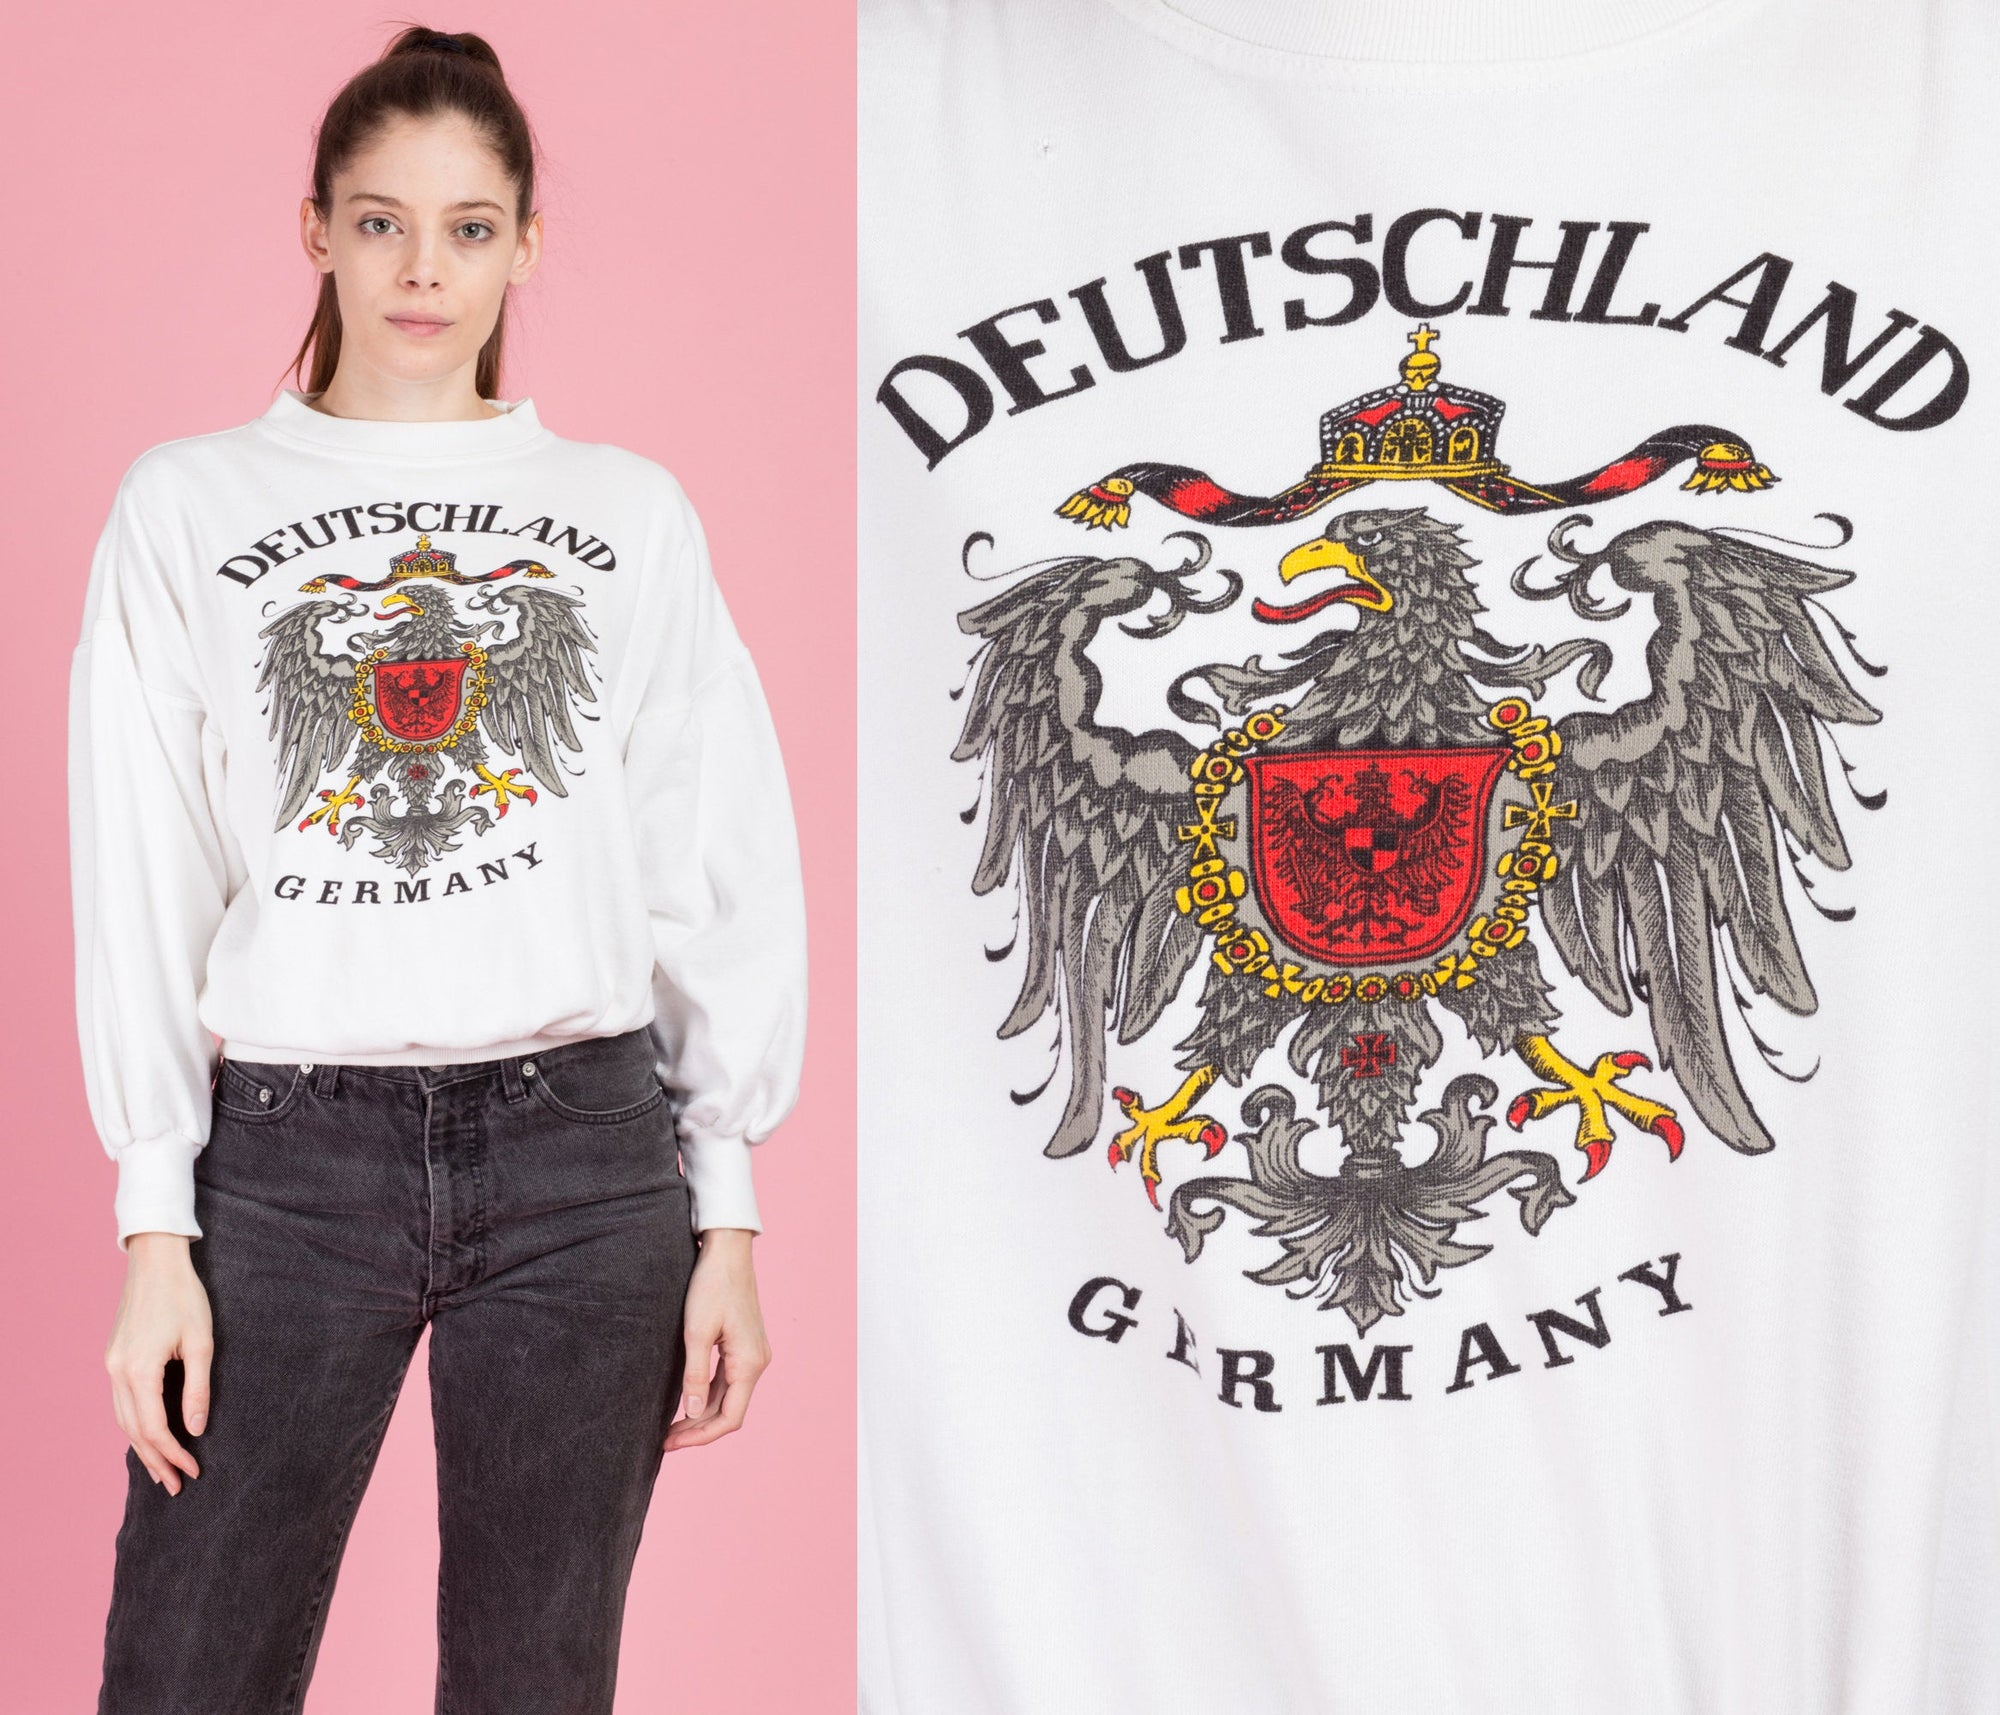 90s Deutschland Germany Sweatshirt - Large